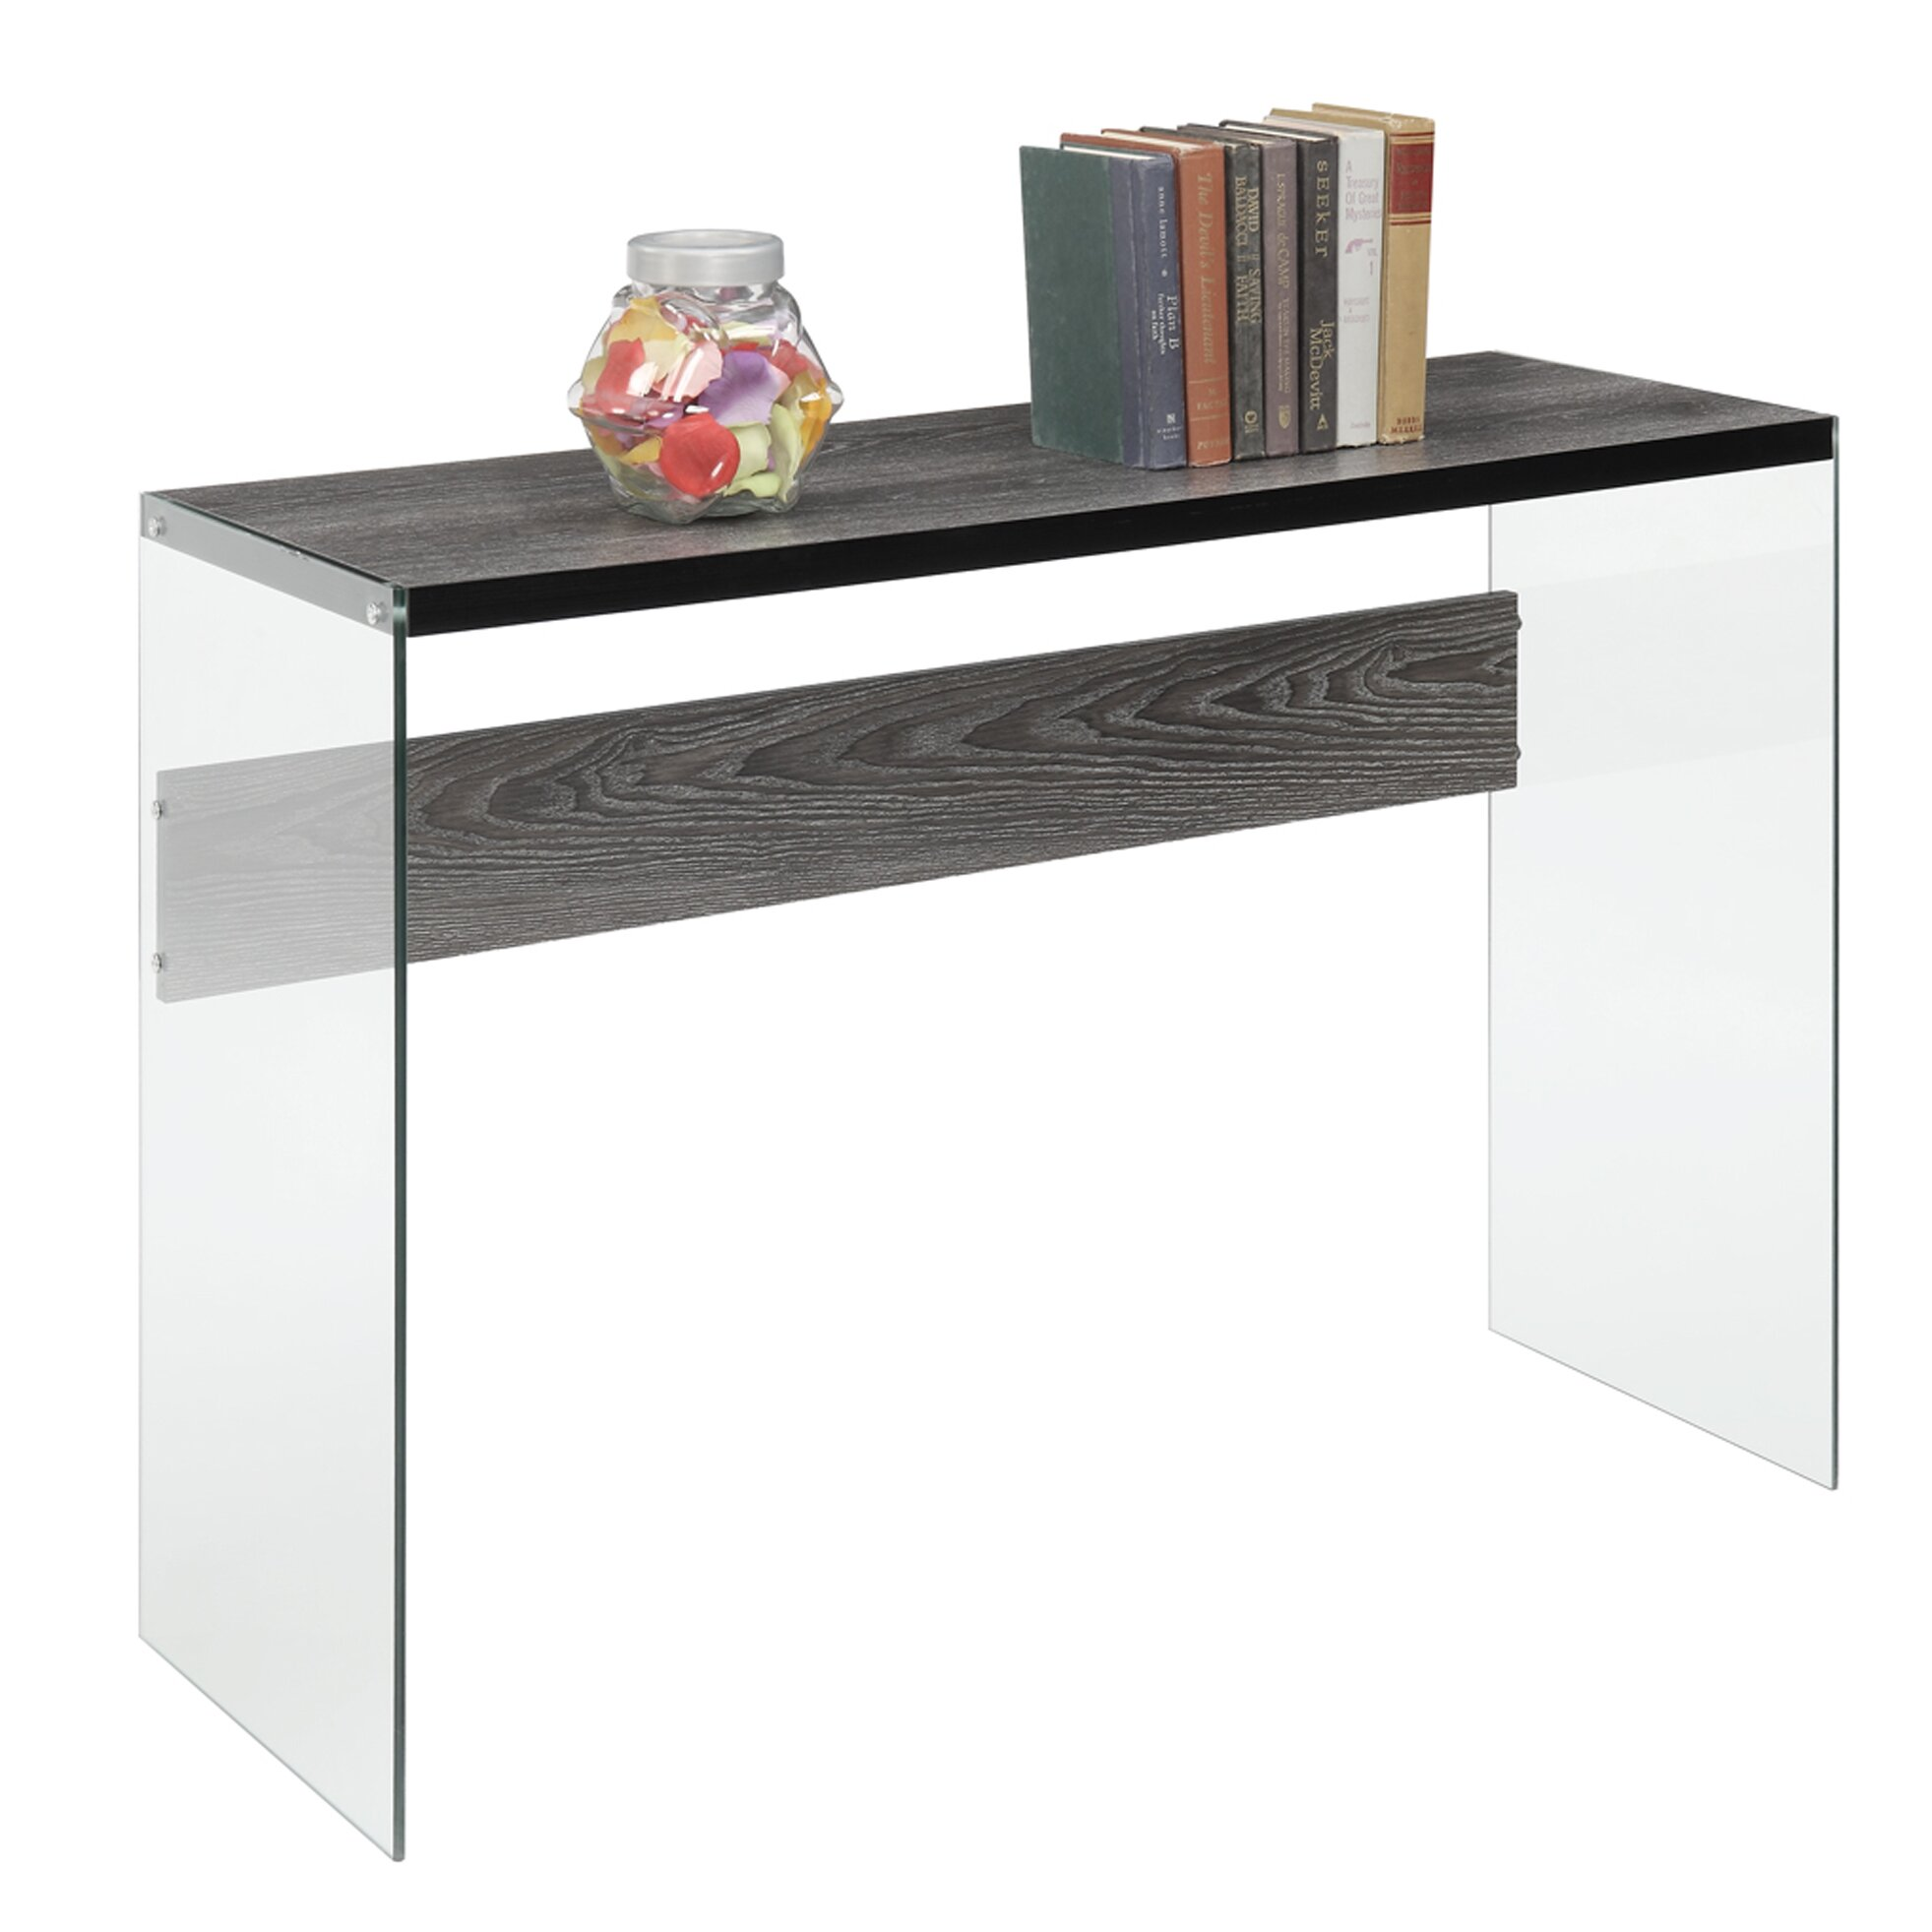 Convenience Concepts Soho Console Table & Reviews  Wayfair. Desks For Sale Sydney. Cheap Vanity Table. Desk Treadmill. Teenage Girl Bedroom Desks. Pedistal Table. Walmart Table Lamps. Designer Desk Chairs. Tv Tray Table Set